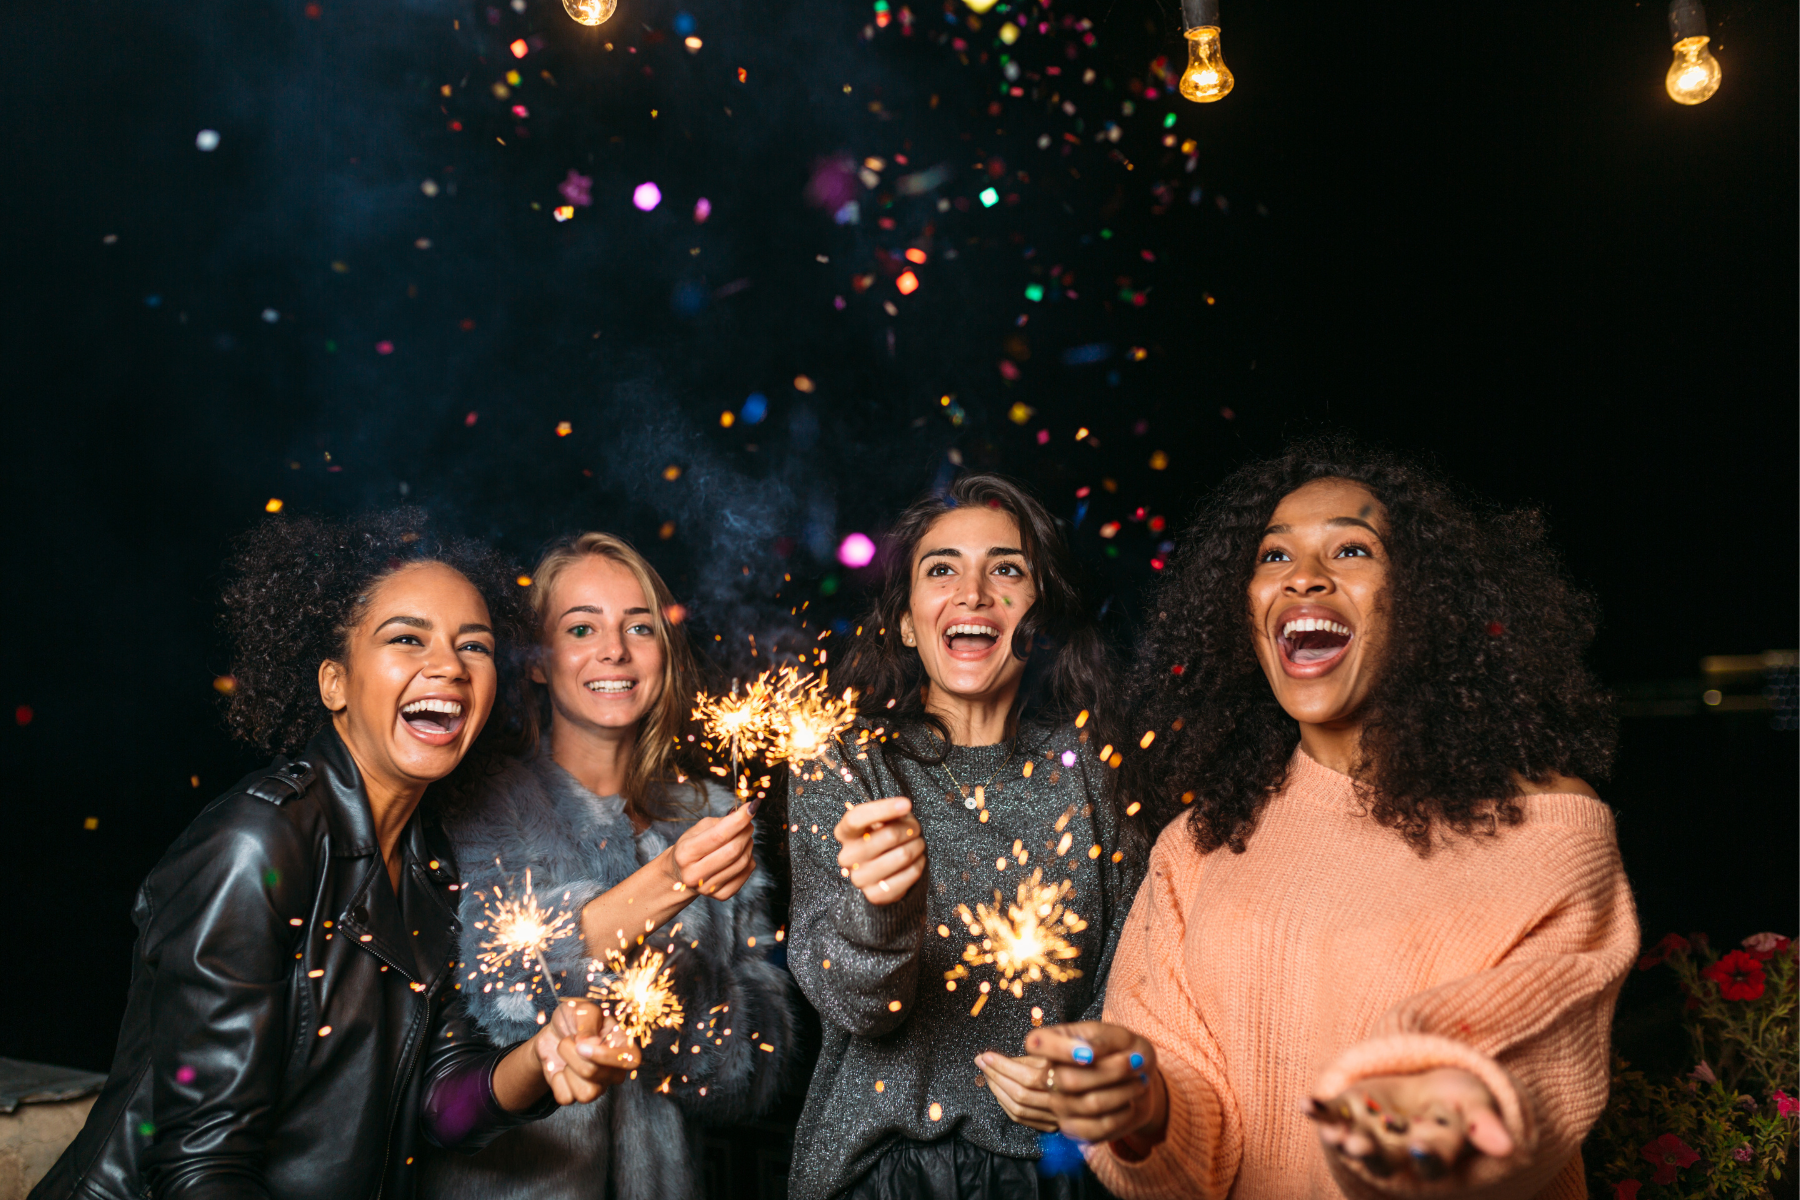 Friends holding sparklers